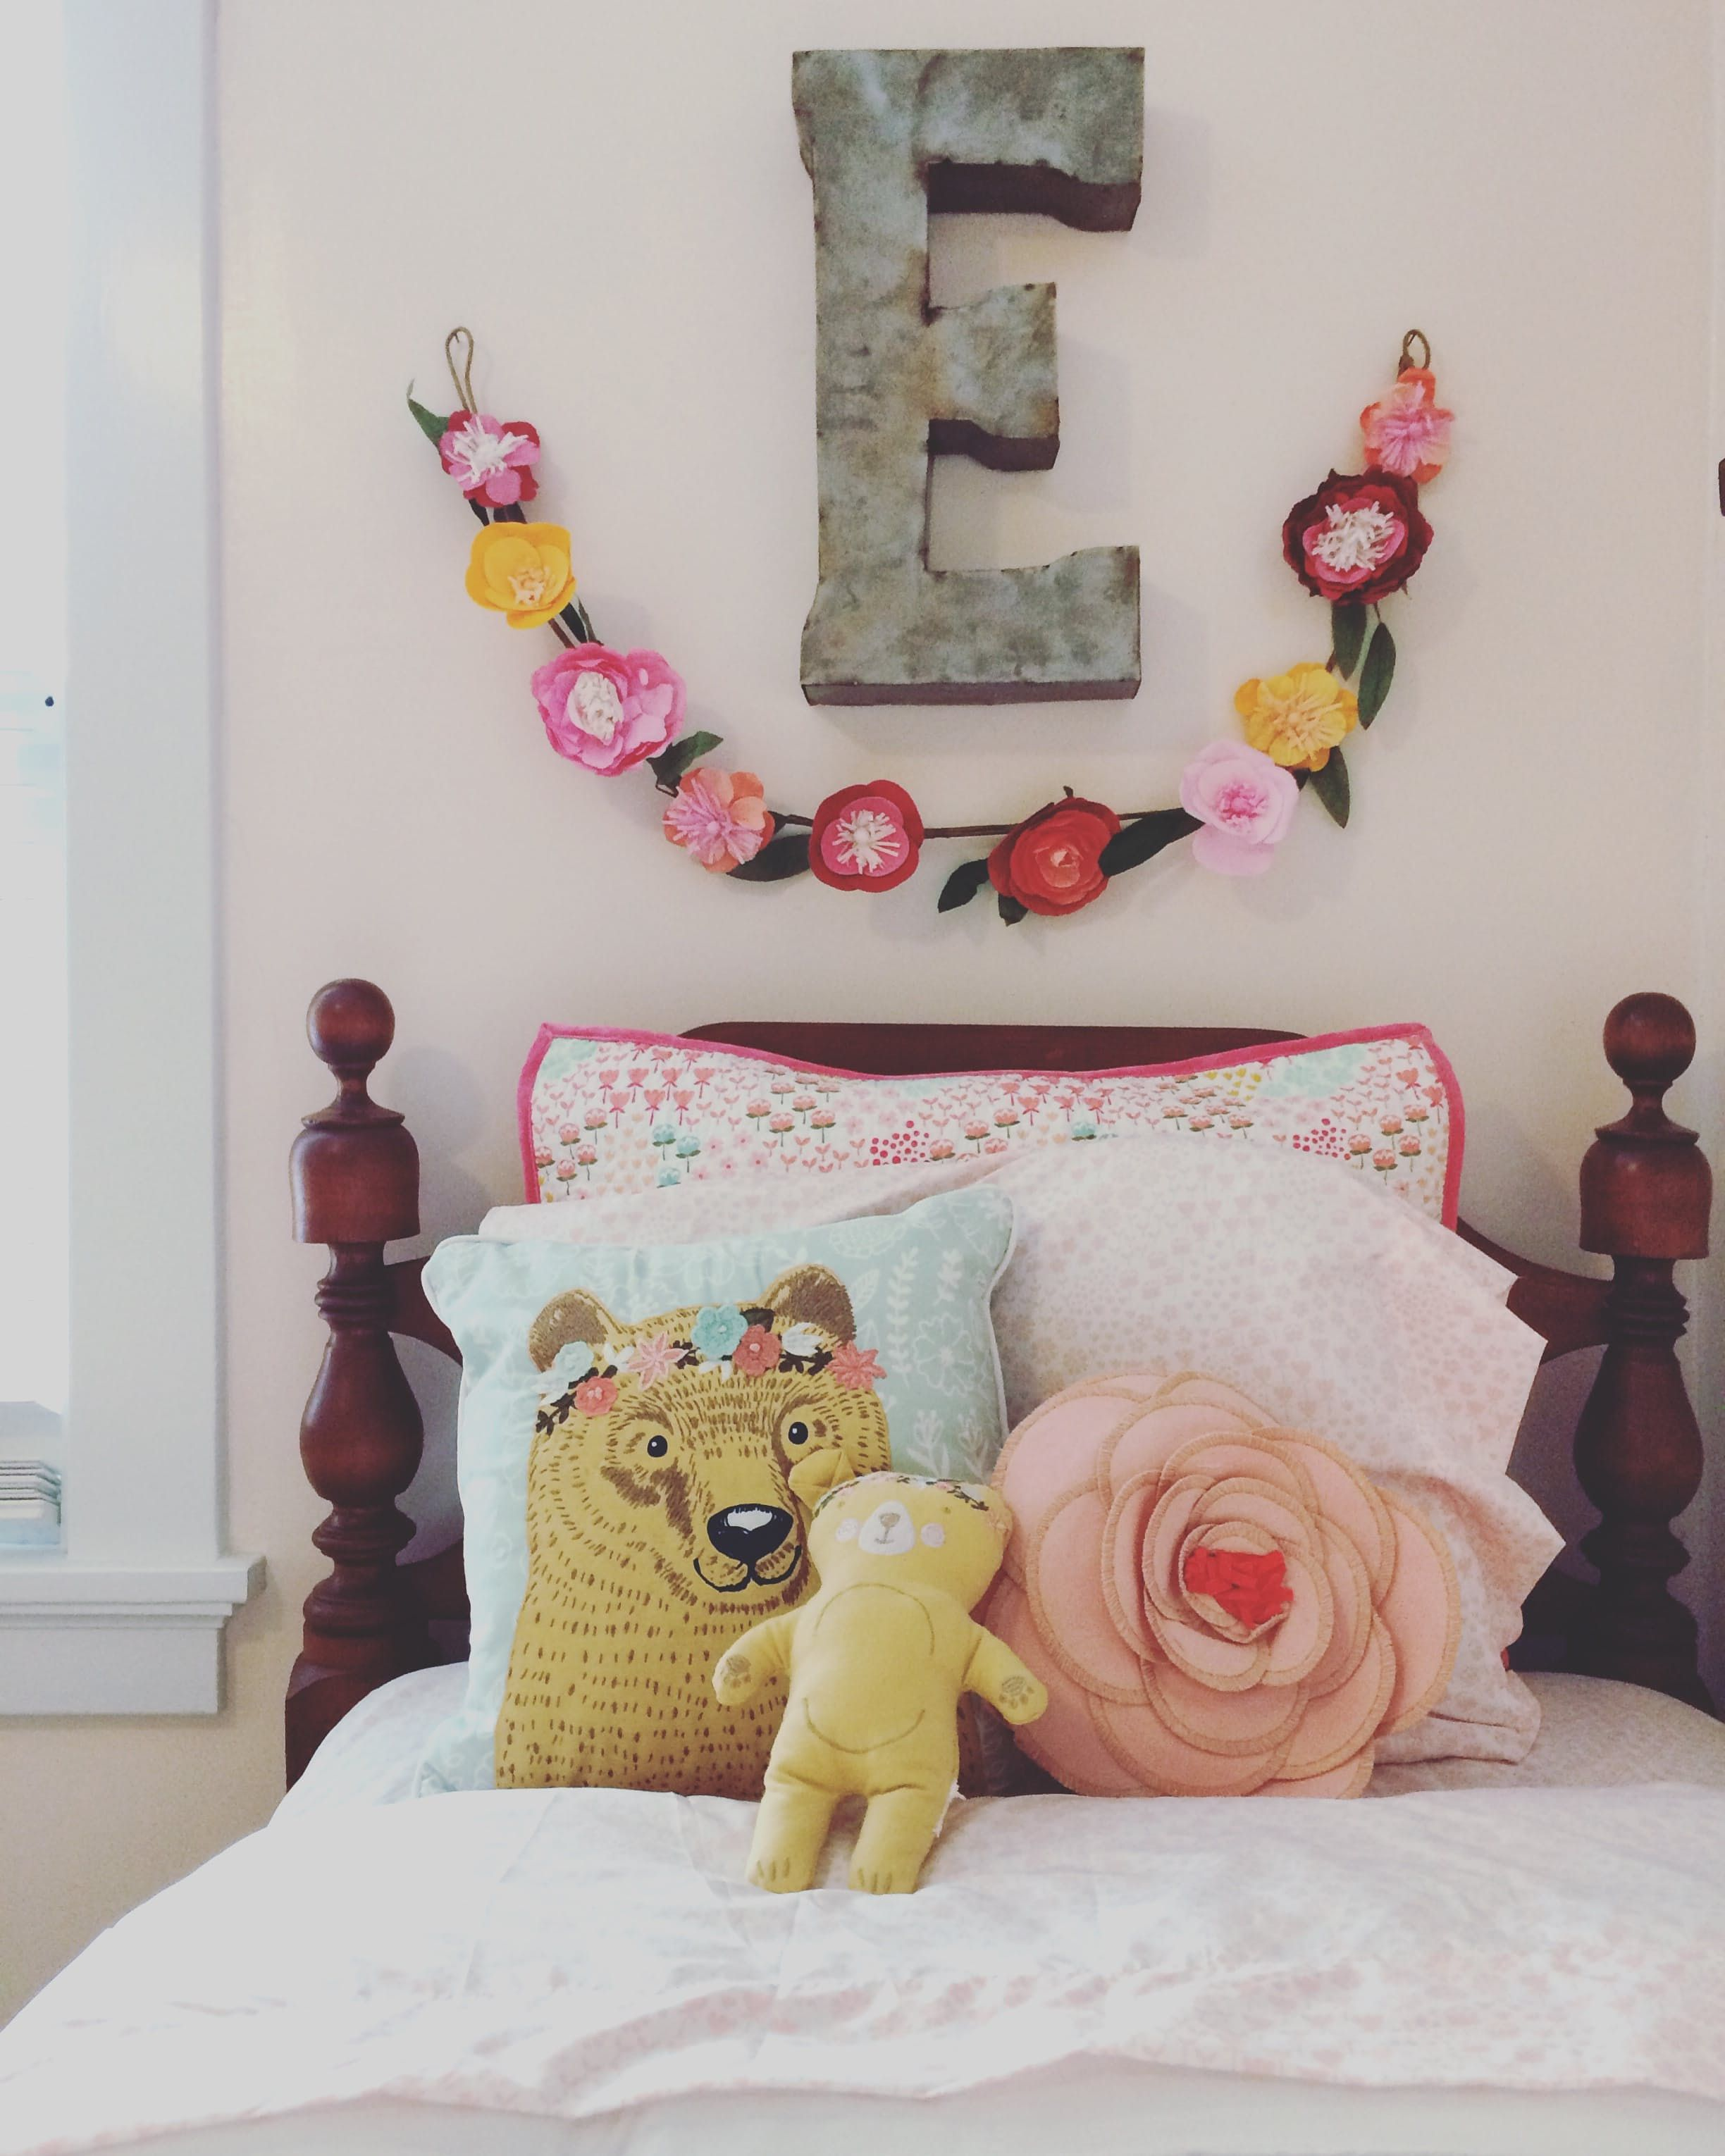 Girlu0027s Bedroom A Colorful and Cozy Family